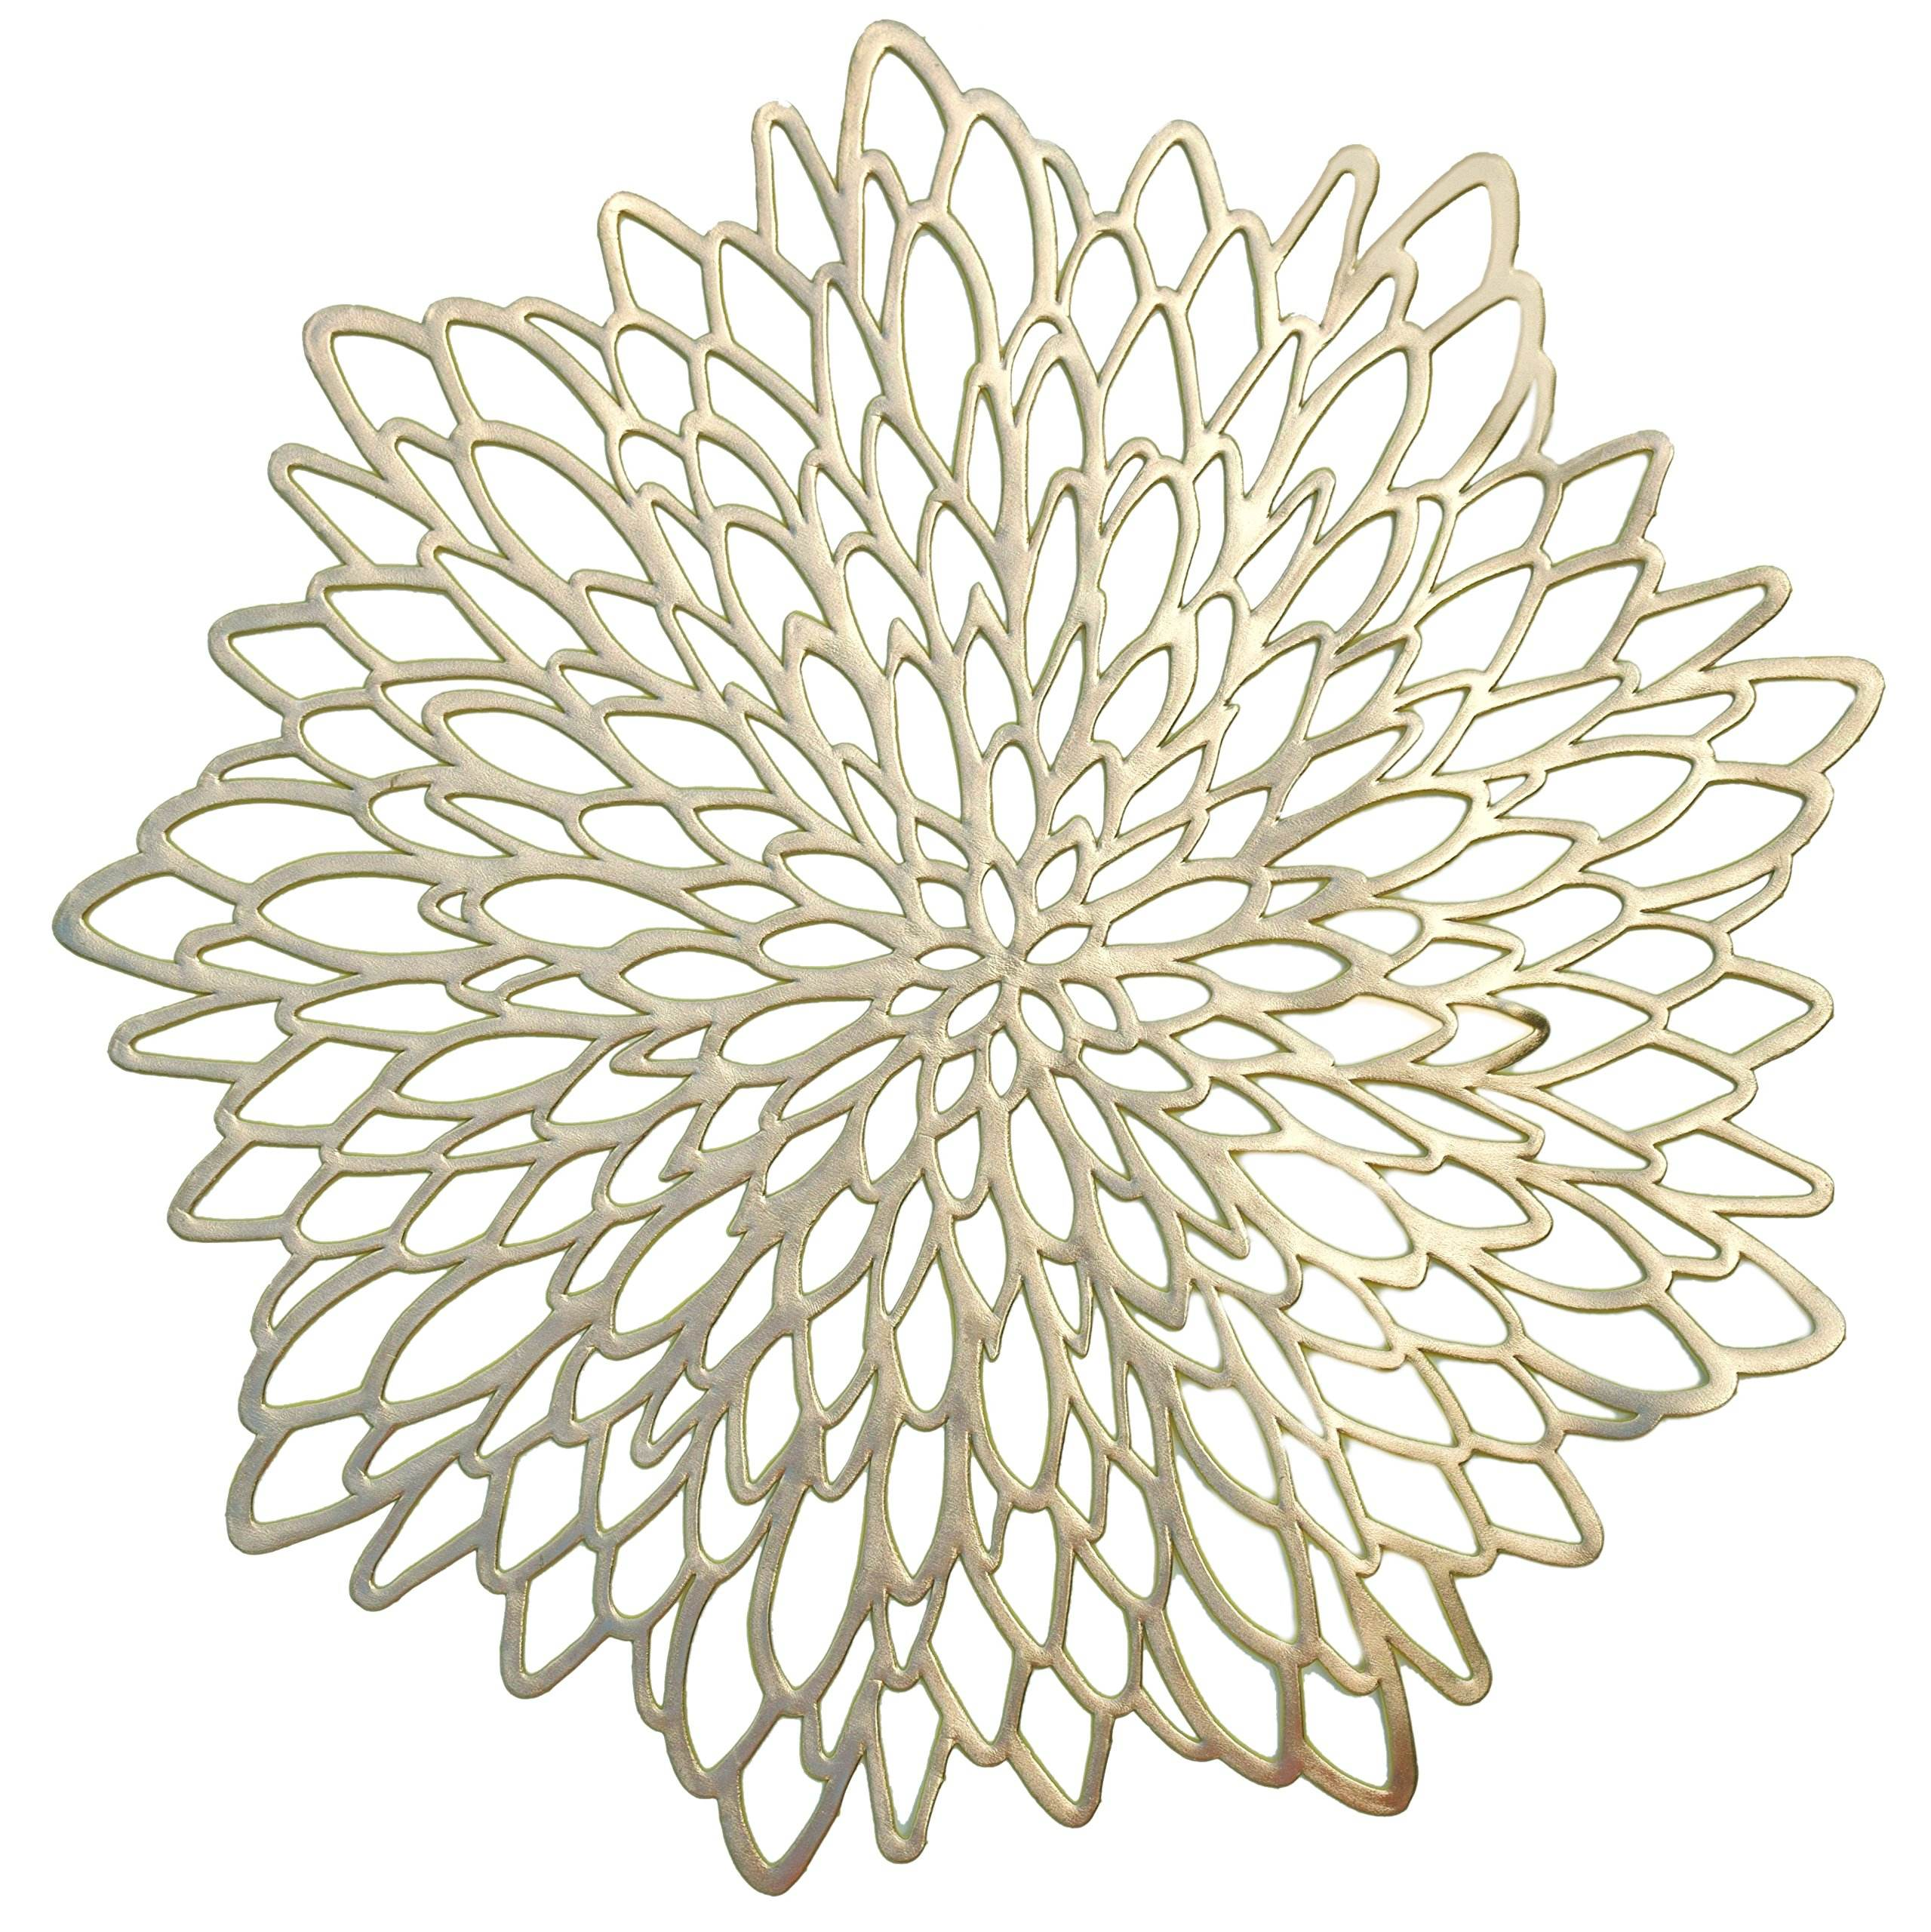 PVC Pressed Vinyl Metallic Placemats/Wedding Accent Centerpiece Placemats Cutwork Decorative Dinning Table Mats